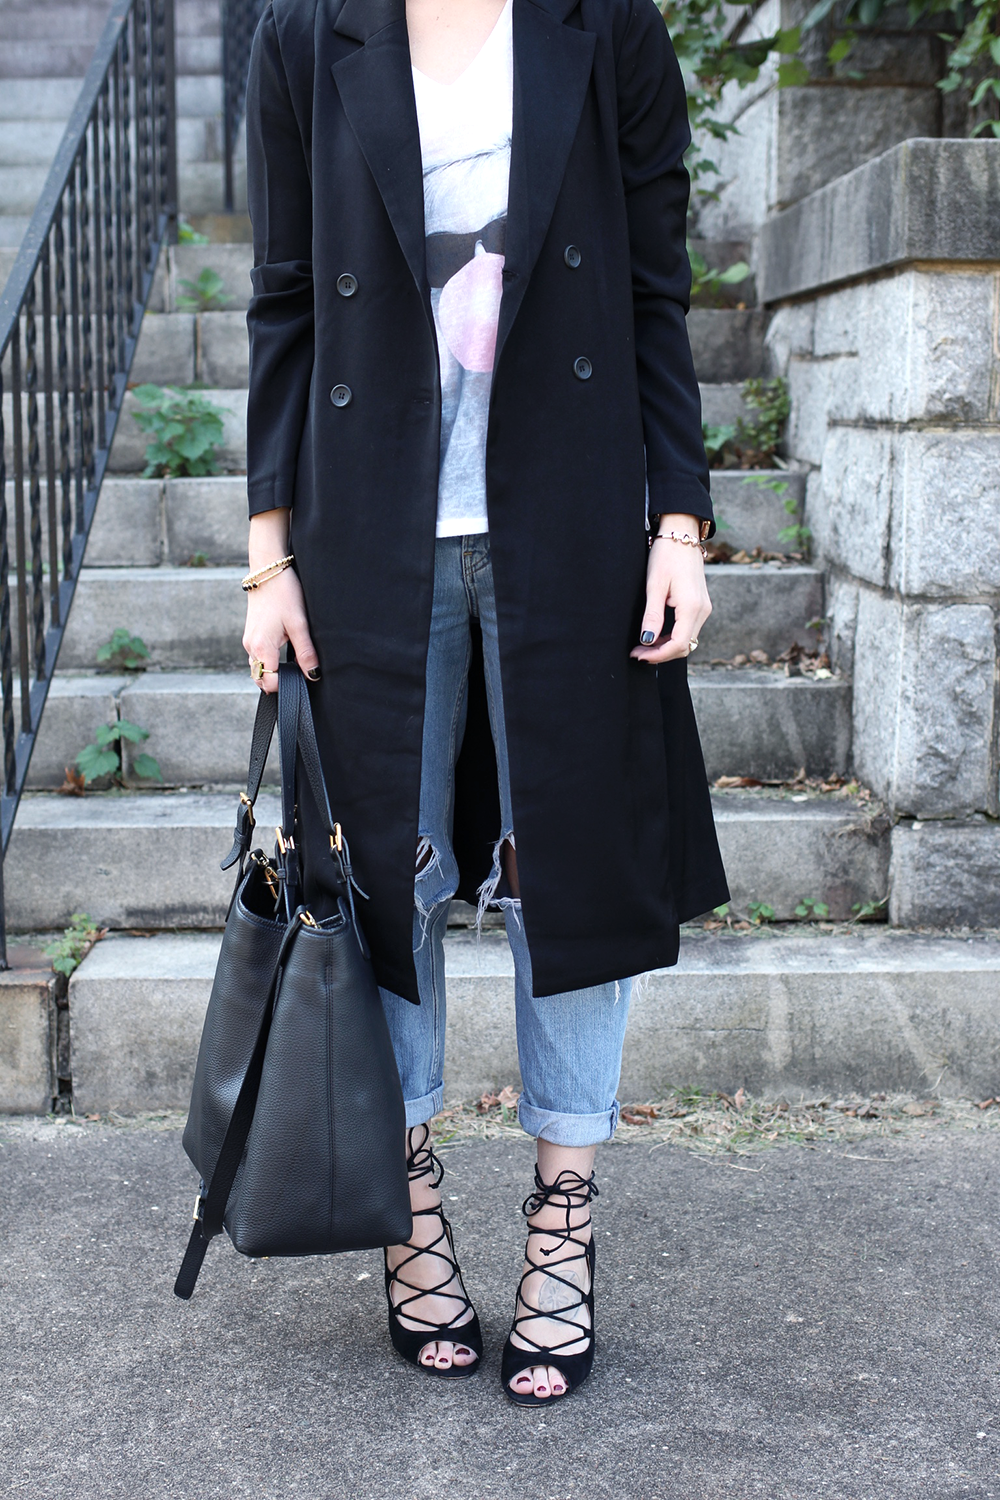 Black Long Coat, Topshop Ripped Denim, Black Minimalistic Outfit Idea